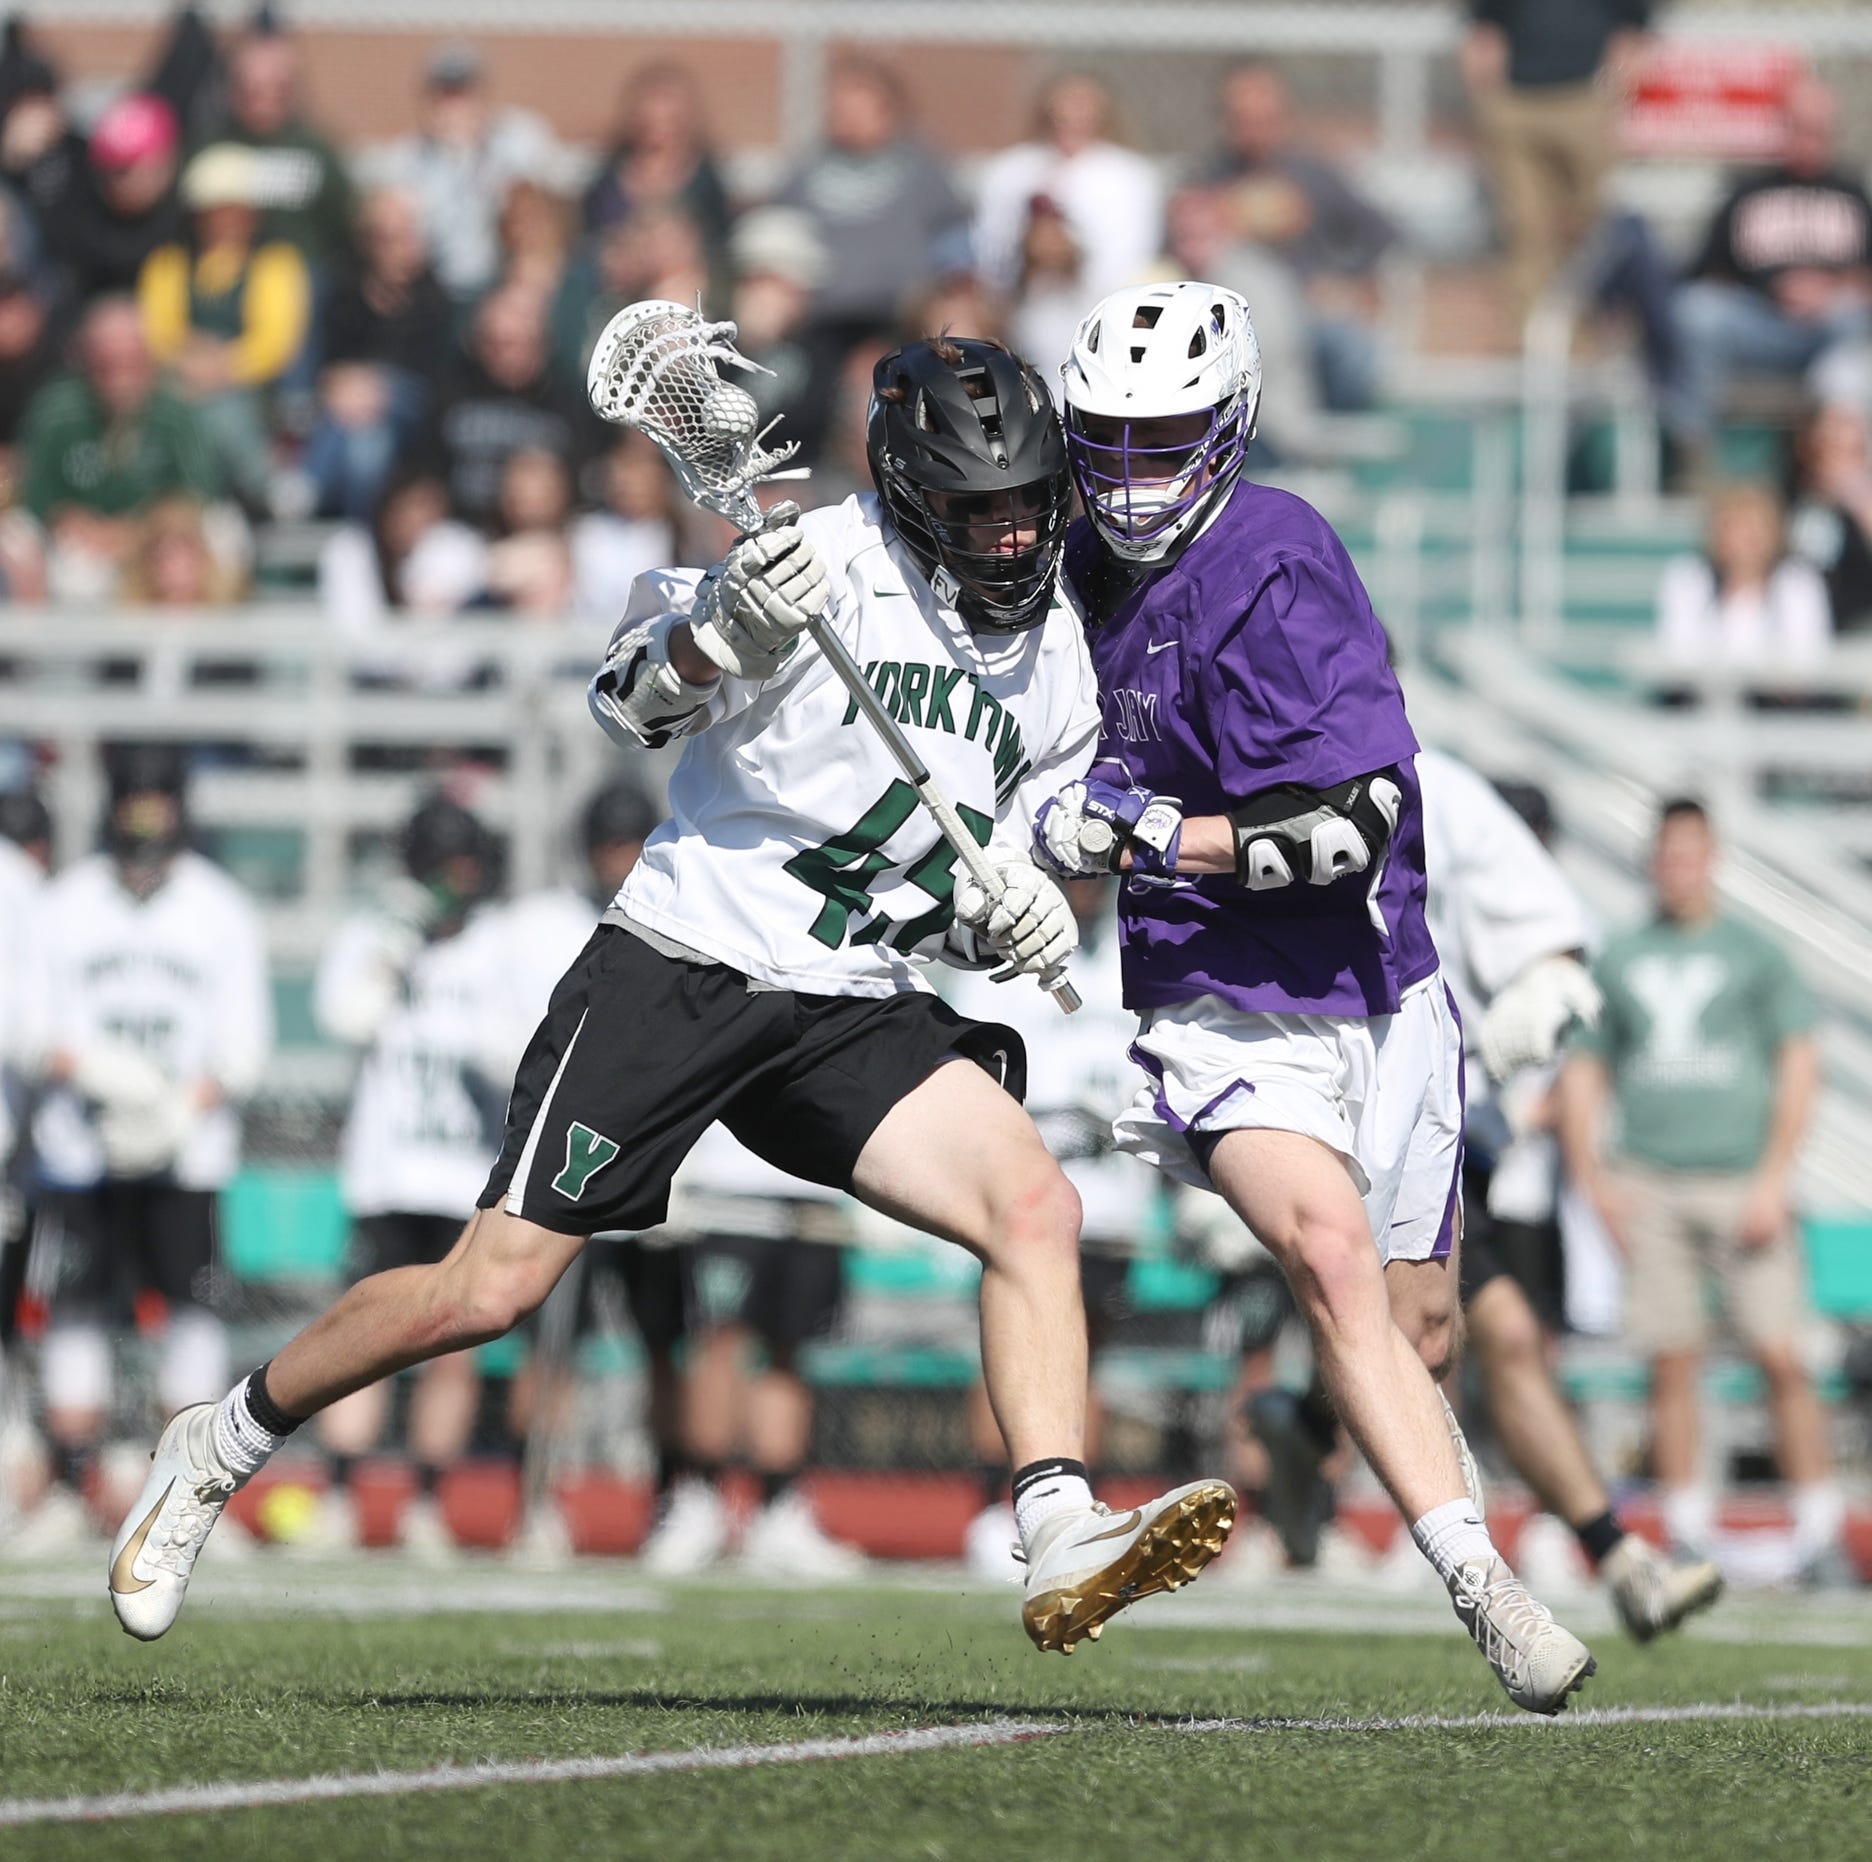 Boys lacrosse: Preview the Section 1 playoffs with top teams, best players and more